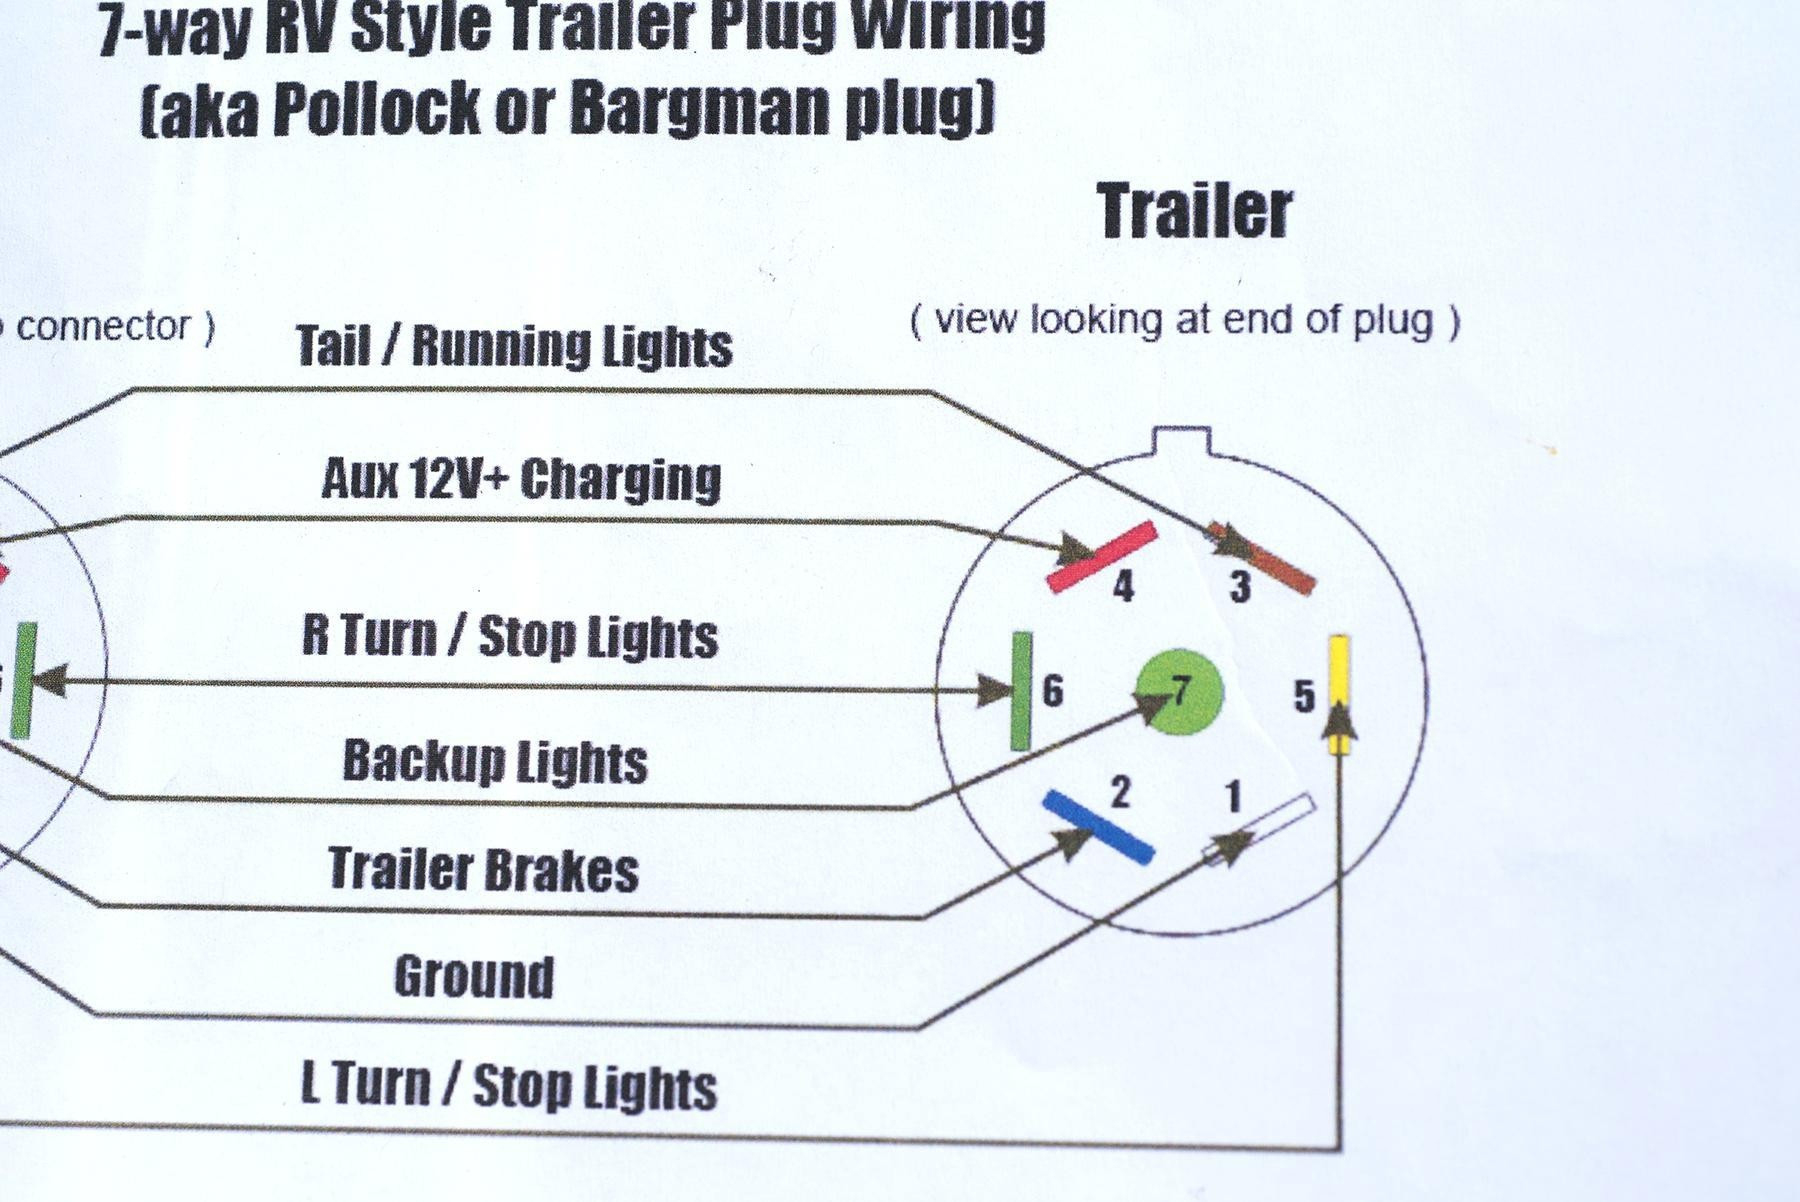 Ford 7 Pin Trailer Wiring - Data Wiring Diagram Update  Blade Wiring Diagram For Trailer on 7 blade wiring harness, 7 blade trailer plug, 7 blade rv wiring, 5 blade trailer wiring diagram, 7 pin trailer connector diagram, 7 blade trailer harness, 6 blade trailer wiring diagram, 7 blade lighting diagram, 4 blade trailer wiring diagram, 7 blade trailer wire,